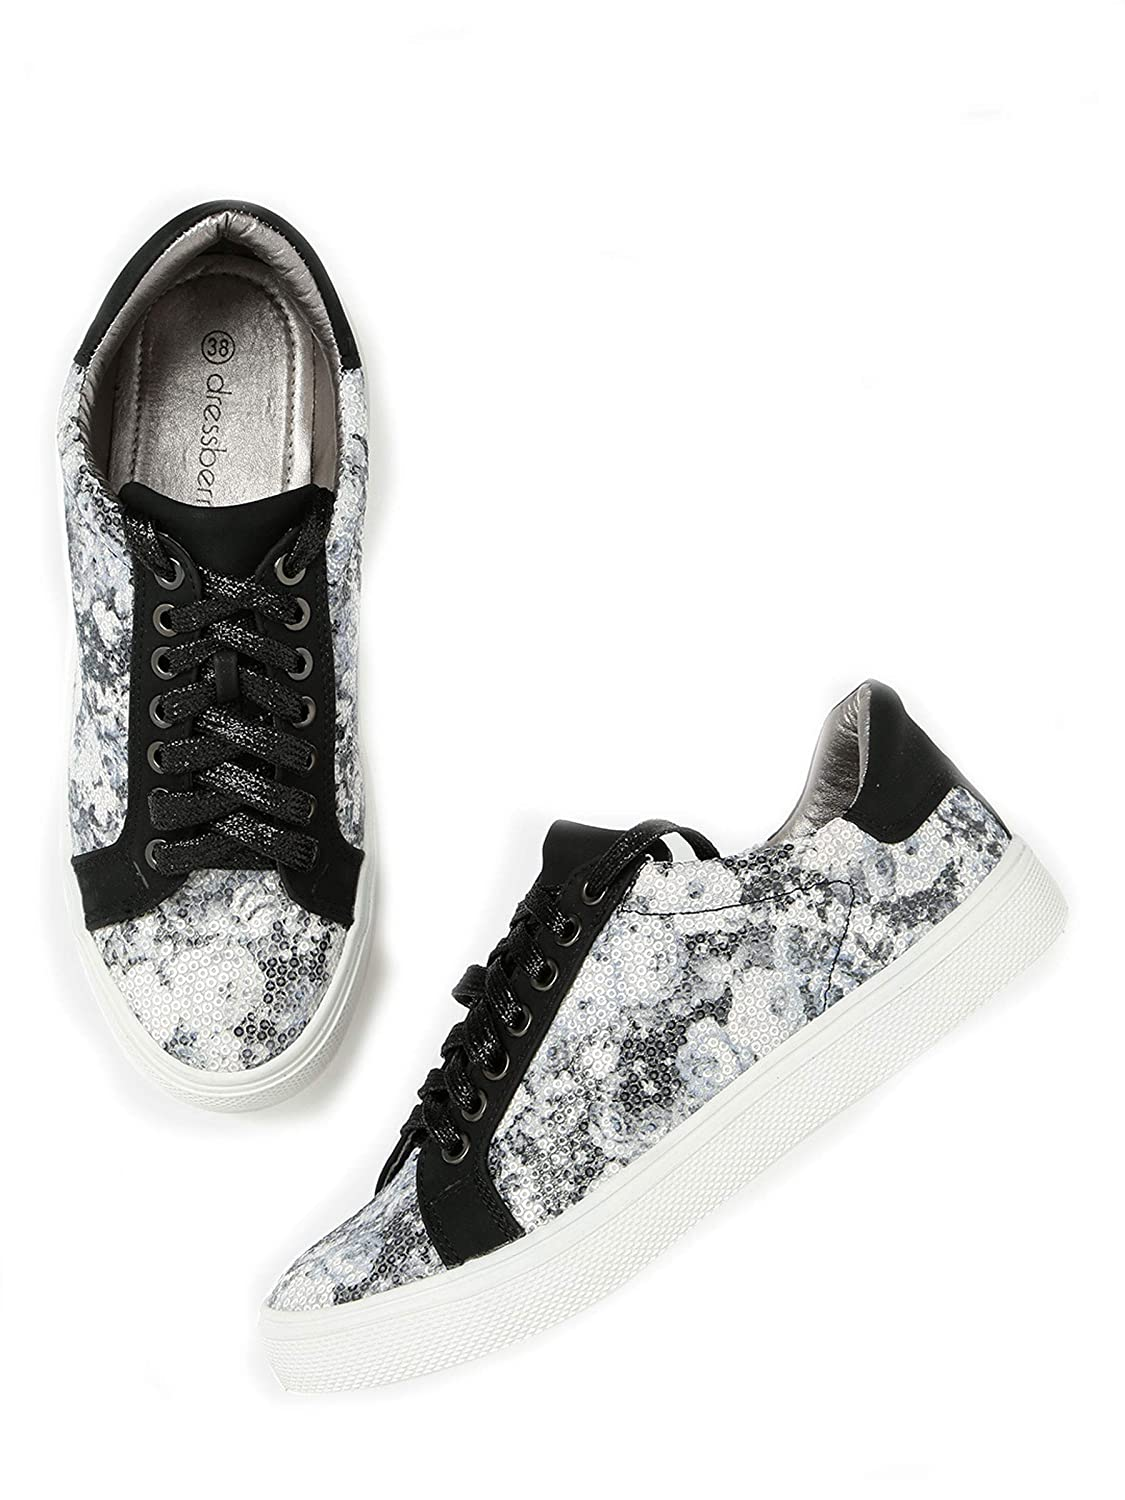 White Printed Sneakers(Size EUR 40